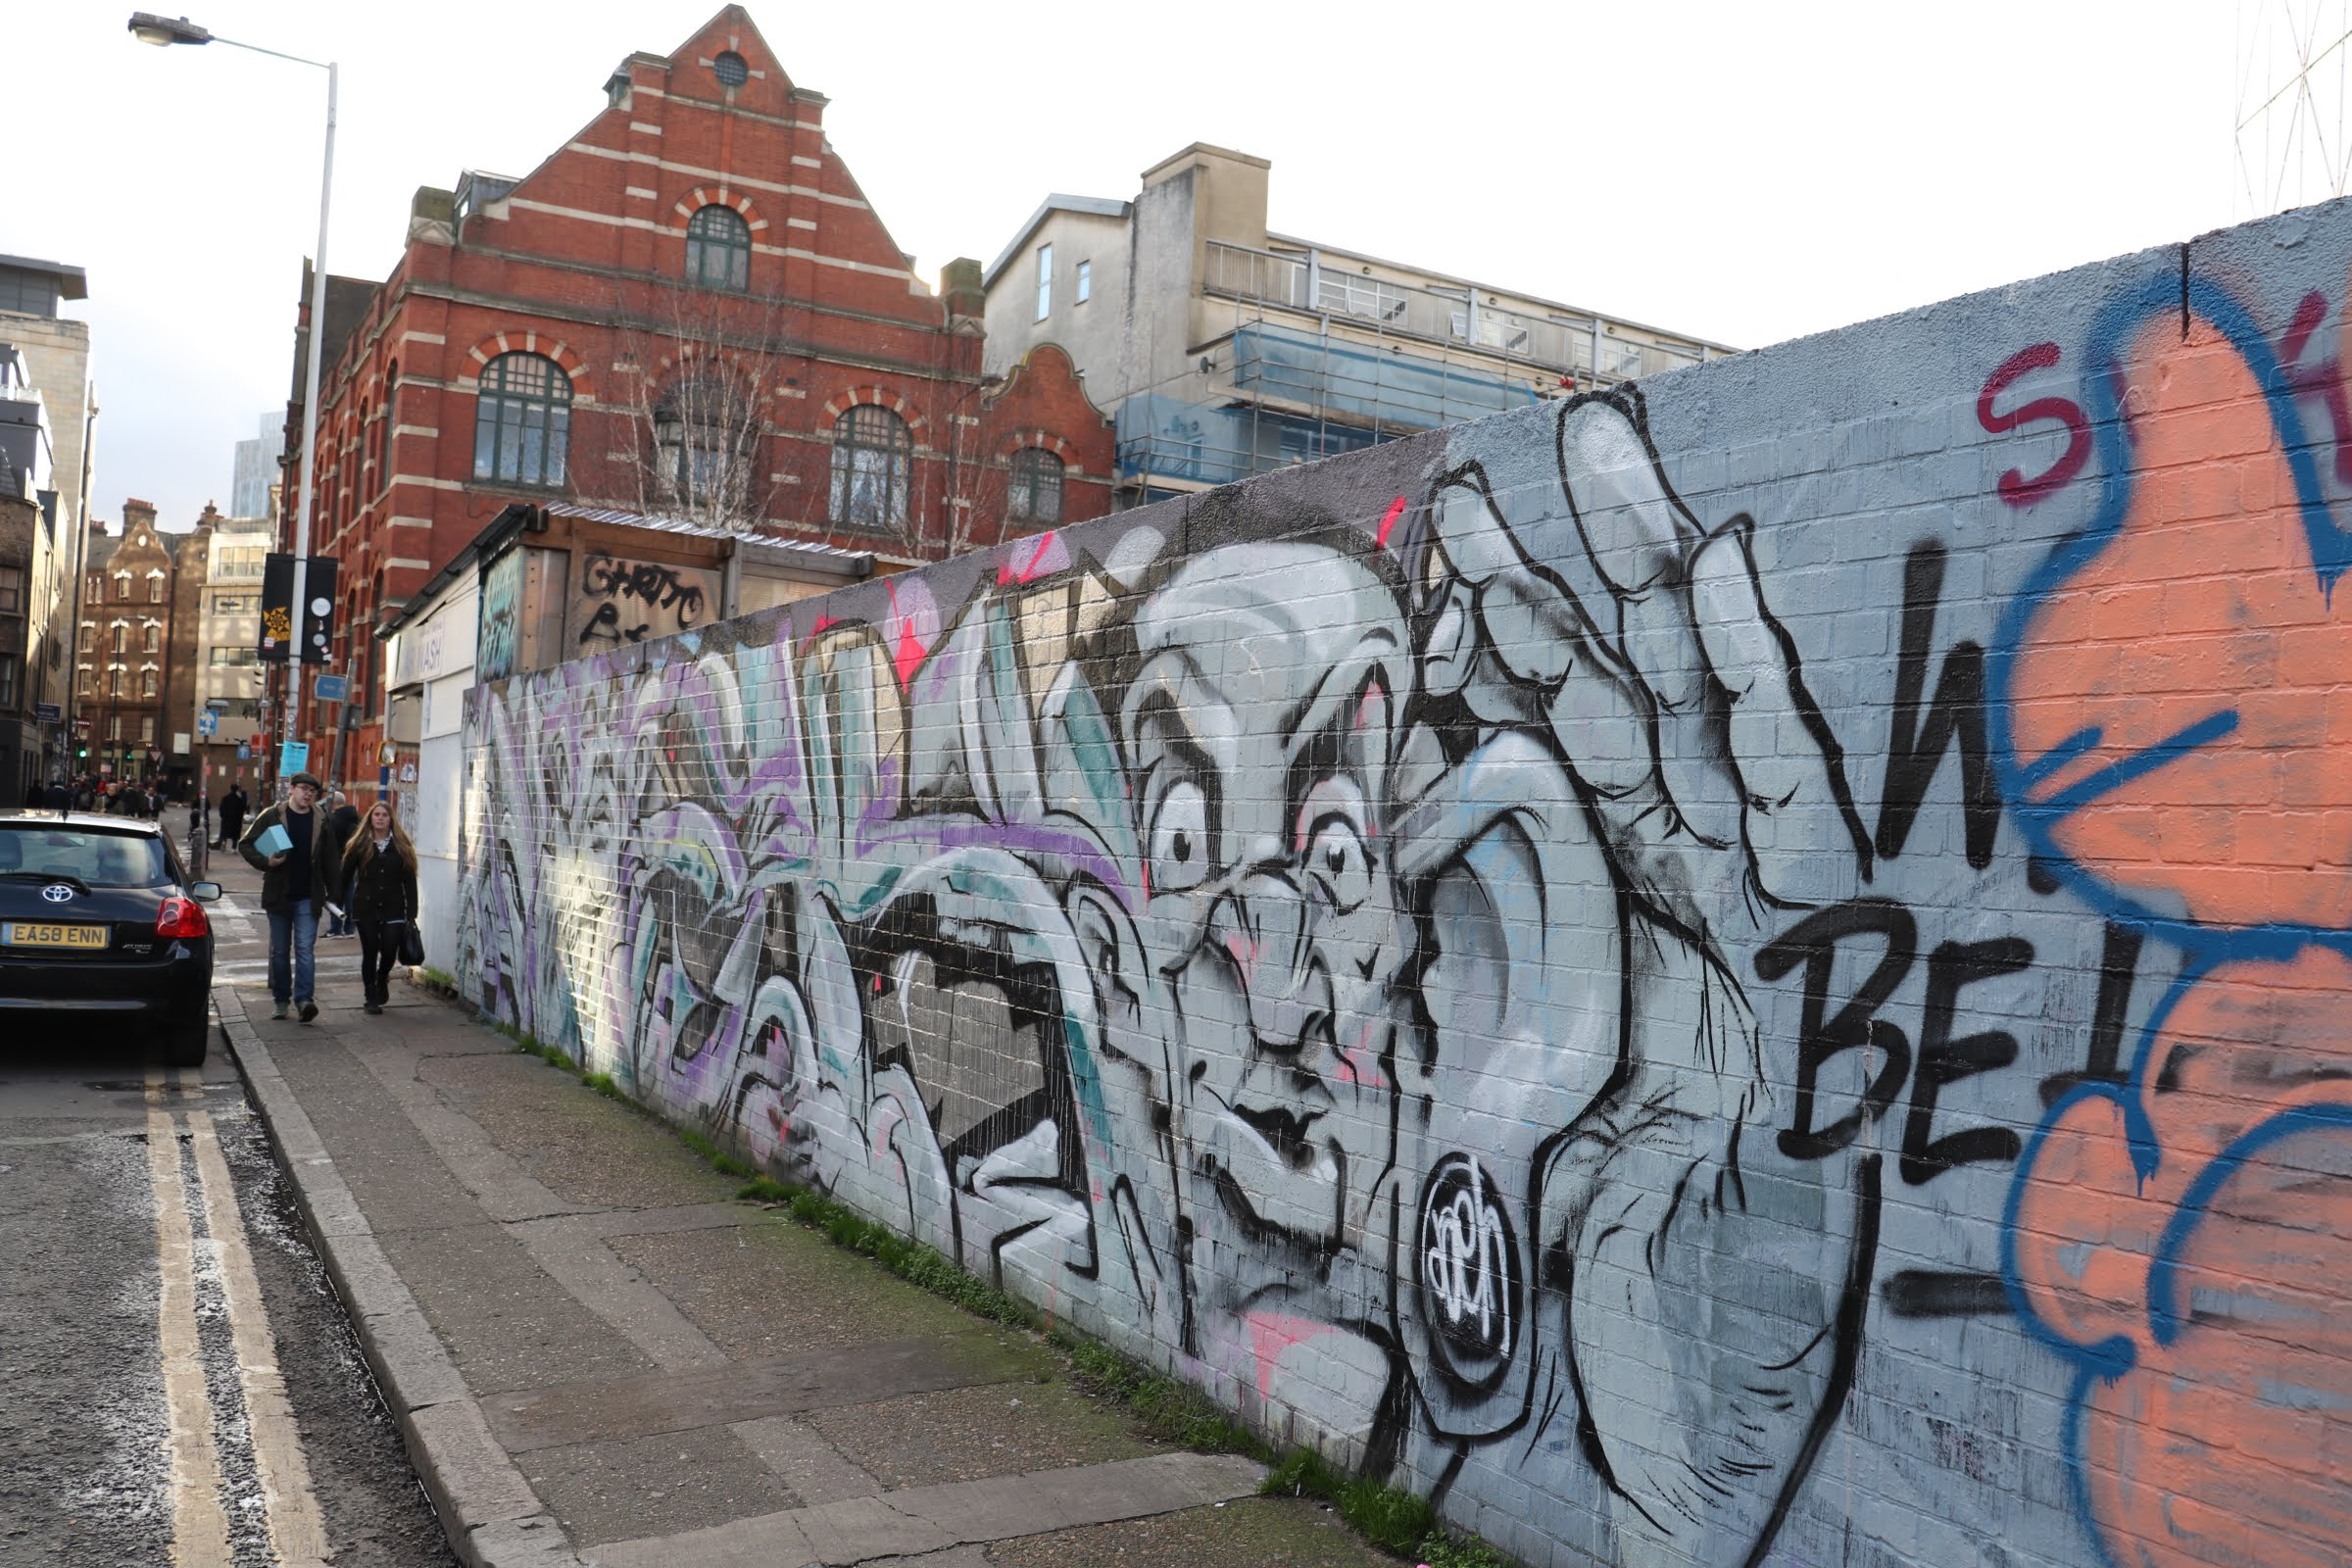 Graffiti representing the sometimes creative yet risky, impulsive or defiant behaviors of those with ADHD and ODD